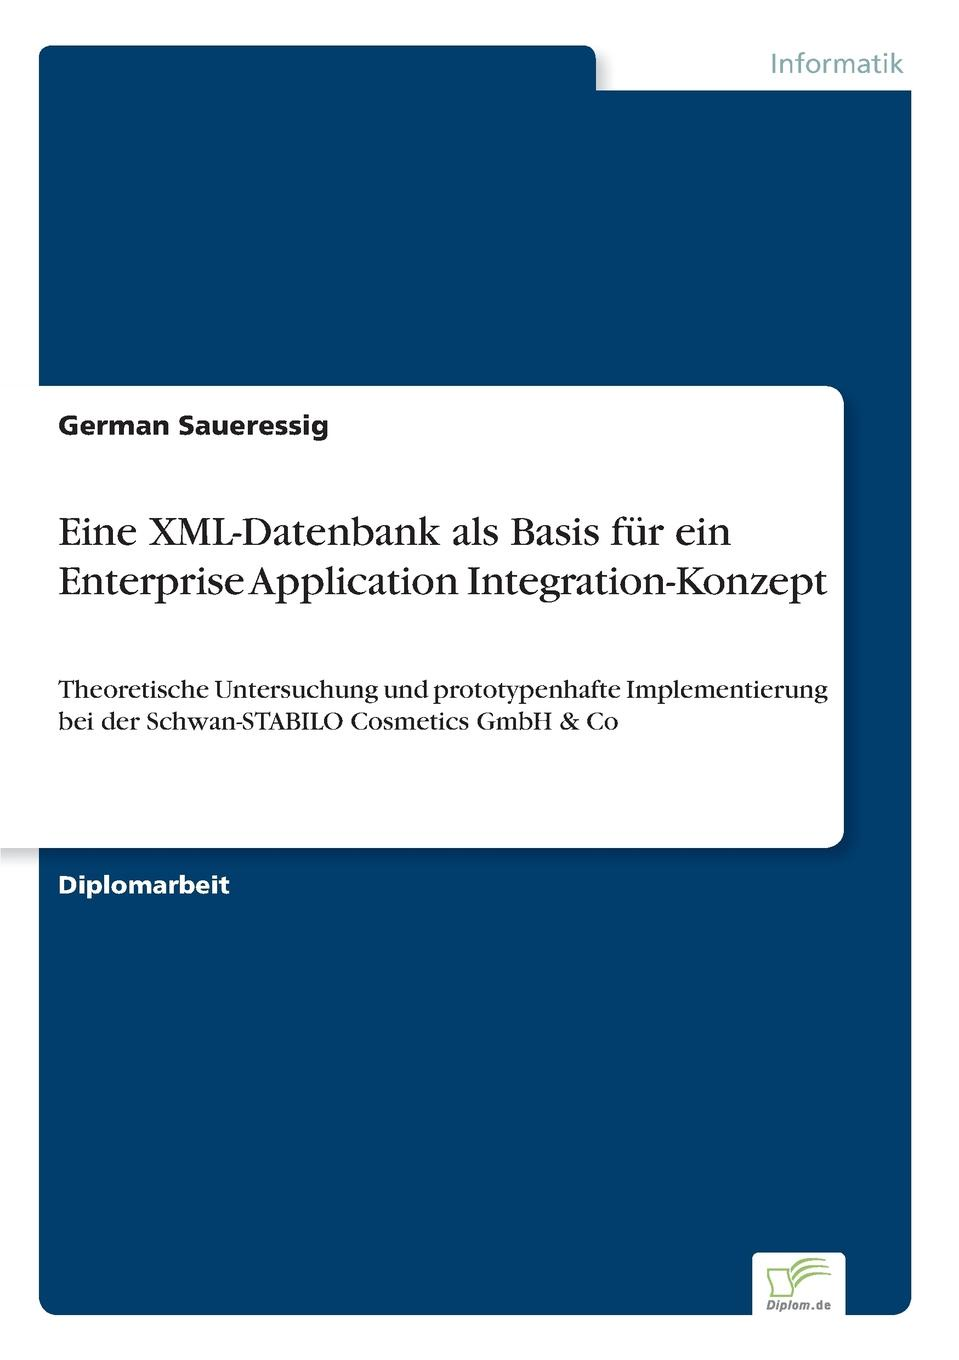 German Saueressig Eine XML-Datenbank als Basis fur ein Enterprise Application Integration-Konzept sitemap 130 xml